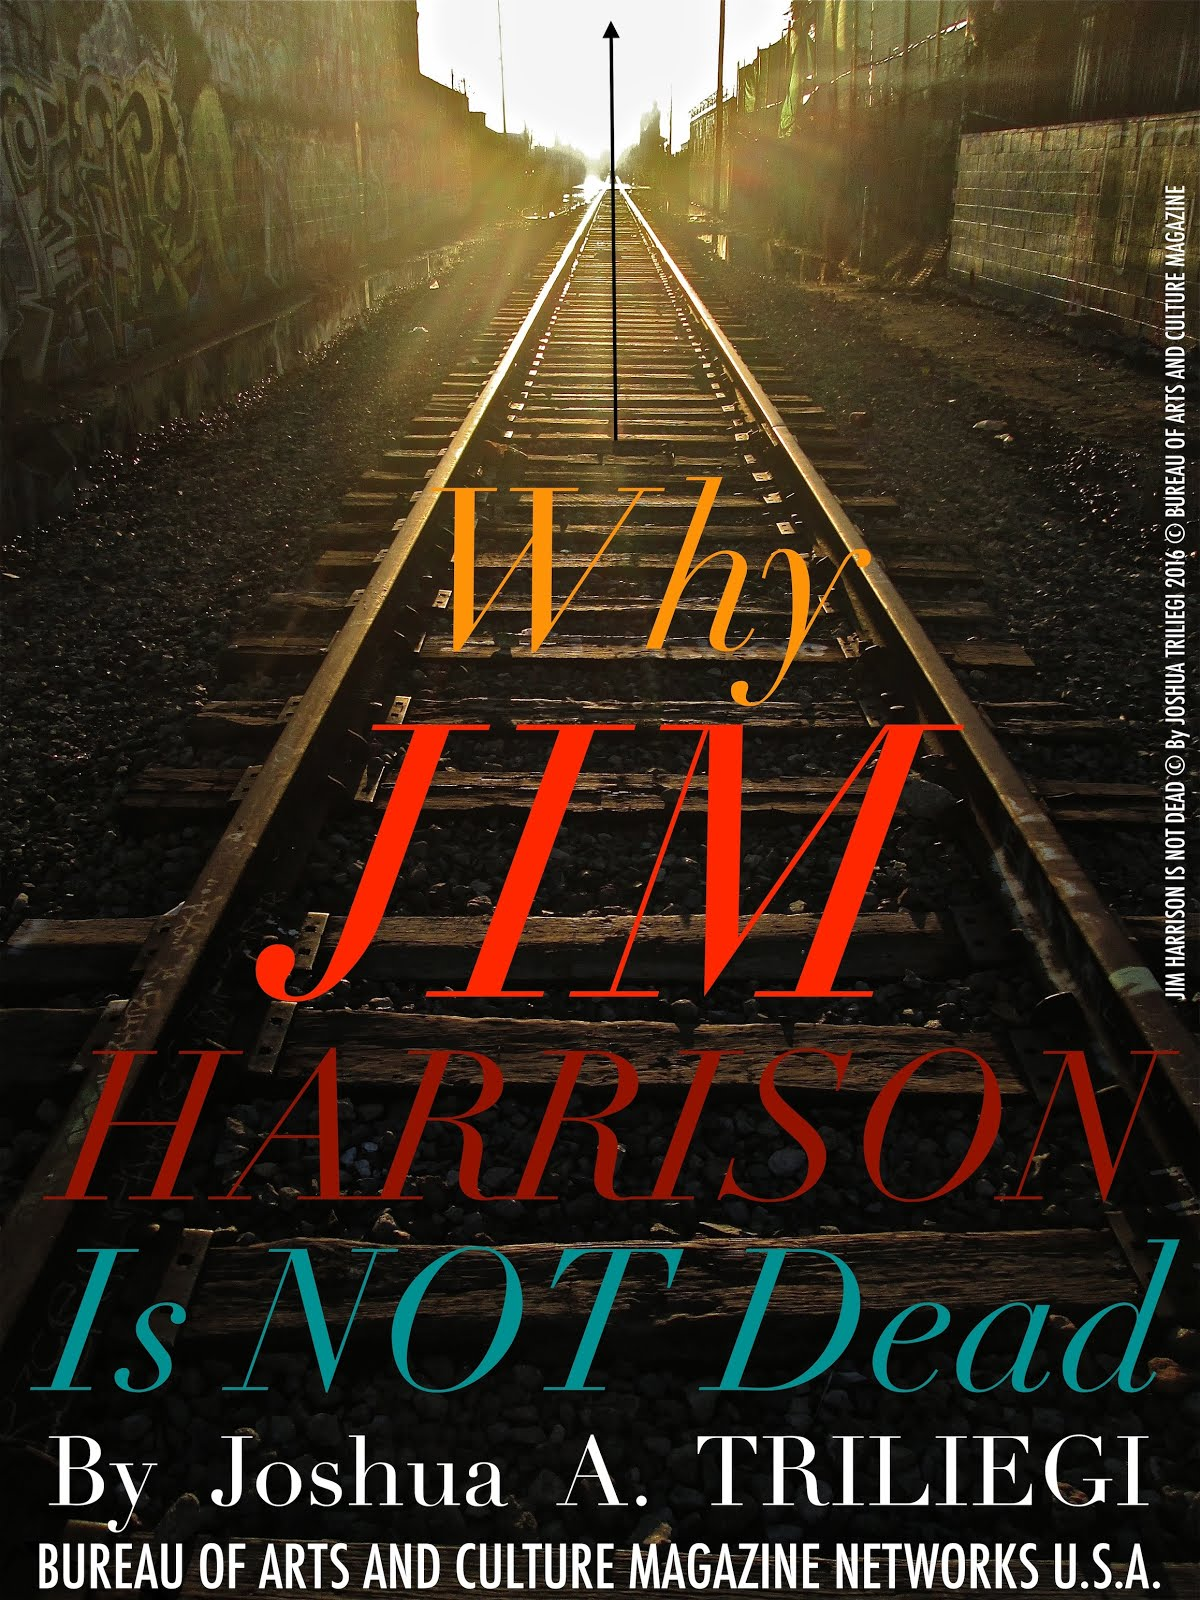 Mr. JIM HARRISON is Not DEAD !